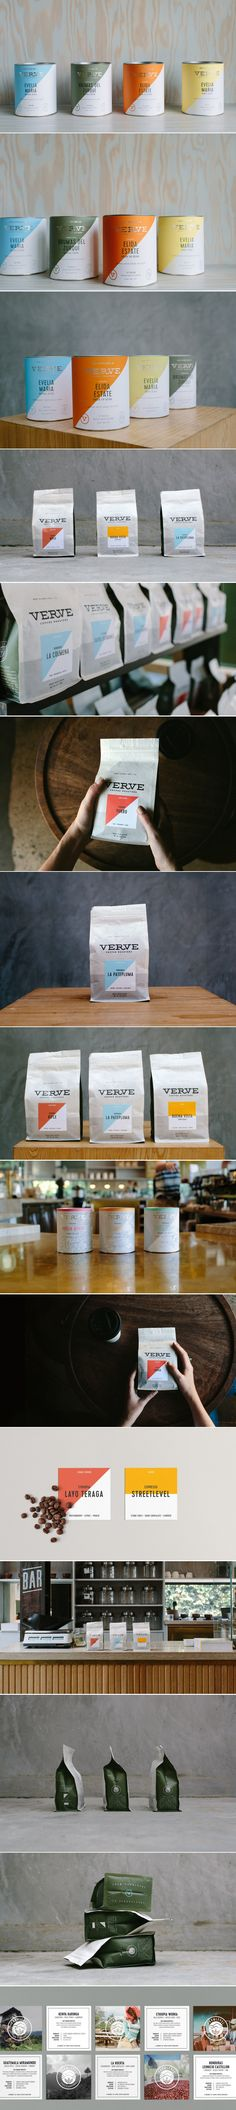 Refreshing the Verve Brand with Design Rooted in Ethics and Excellence — The Dieline | Packaging & Branding Design & Innovation News